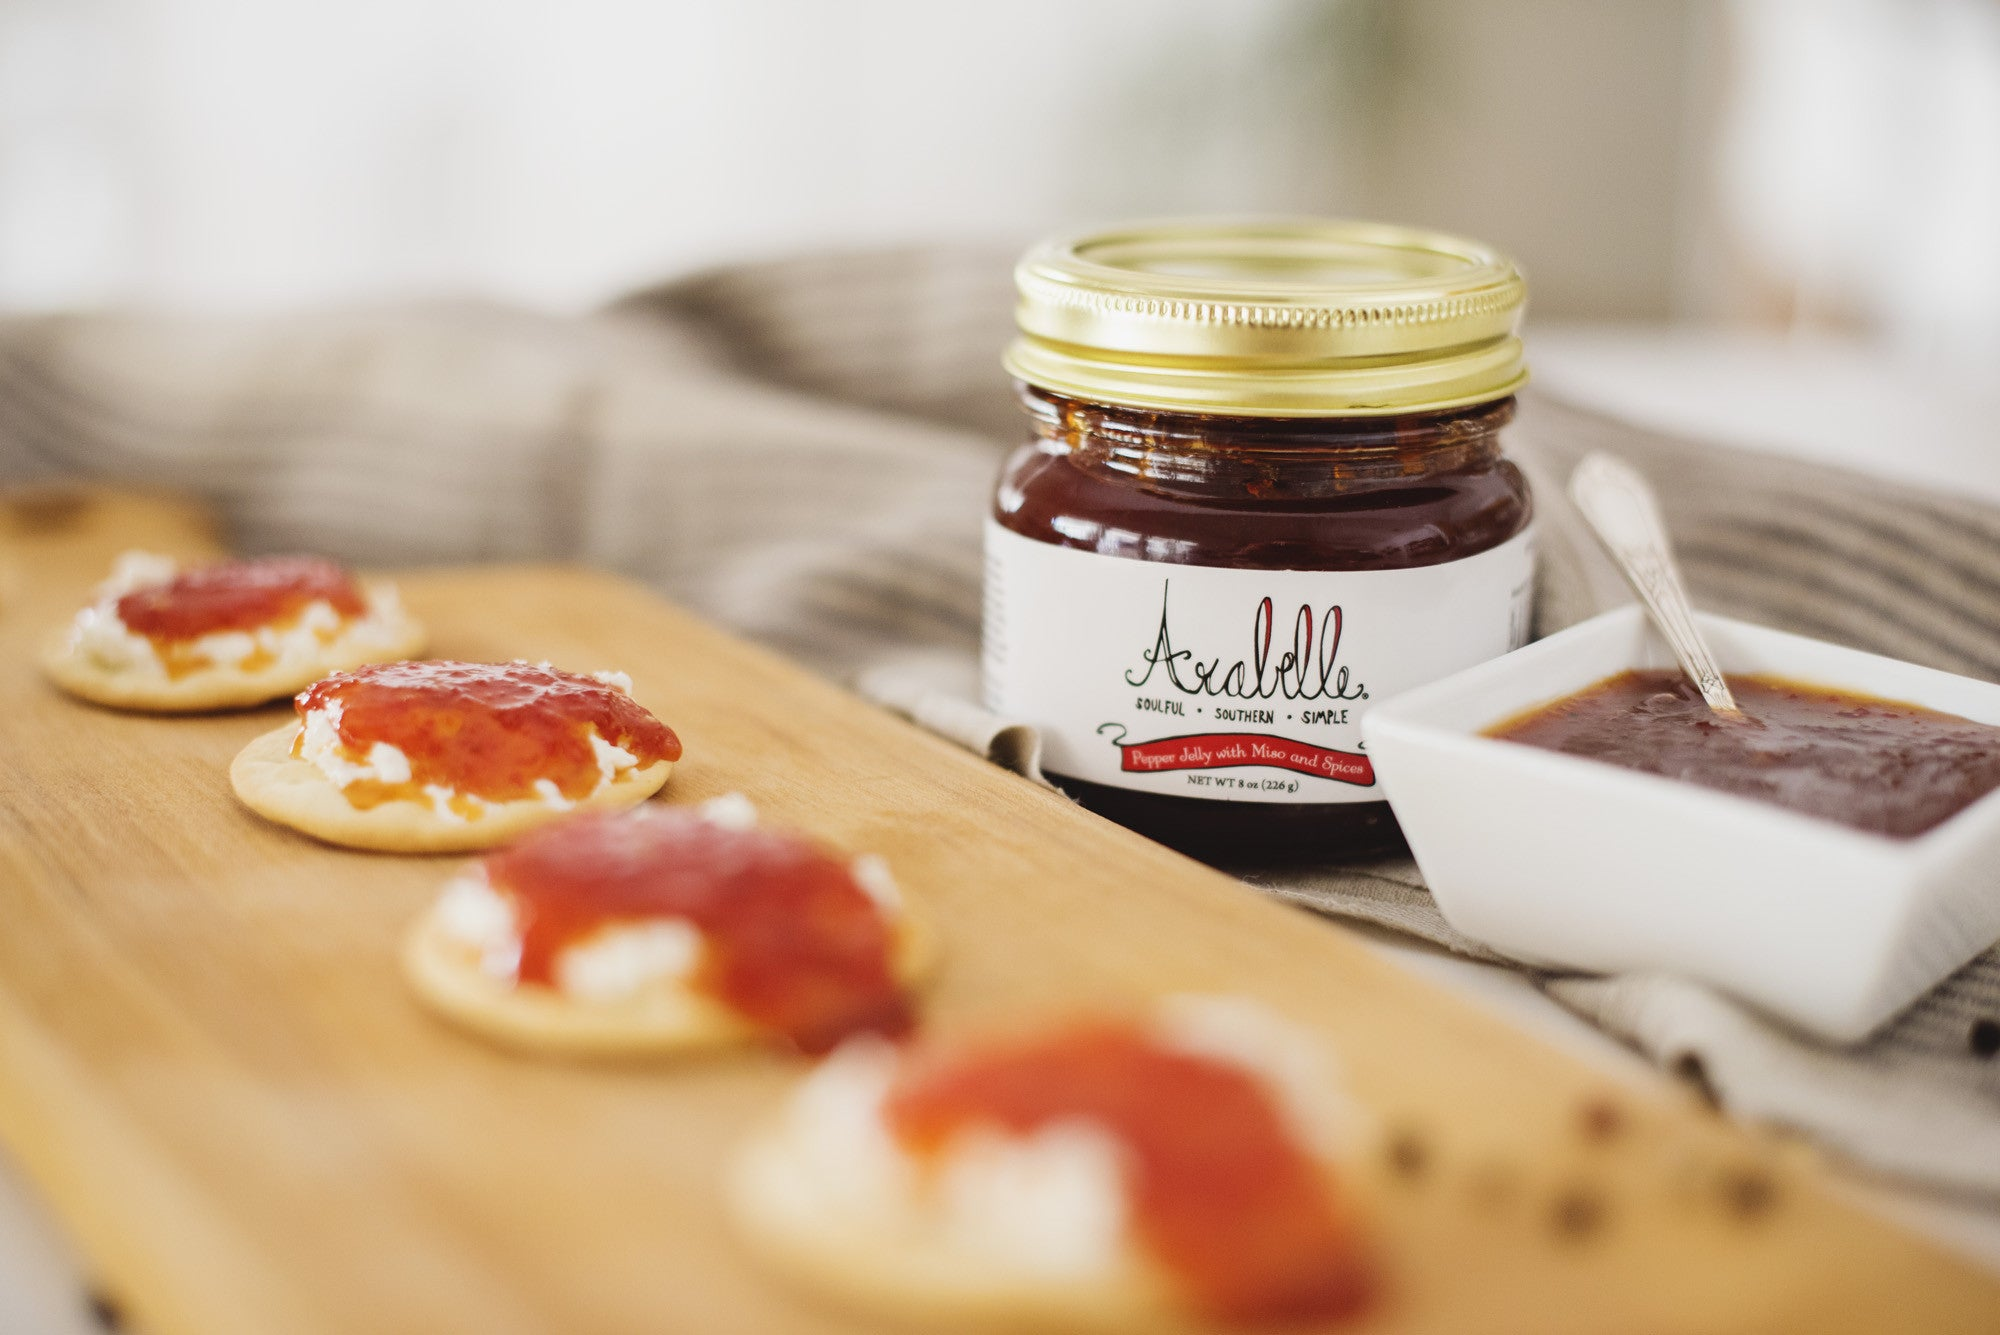 <a href='http://arabellefood.com/product/pepper-jelly-with-miso-spices/' target='_blank'><b>Arabelle Pepper Jelly with Miso and Spices-</b></a><br> This delicious pepper jelly is an Alabama favorite and adds a little kick to every bite. Try it with cream cheese on crackers to start and you'll be adding it to everything soon after.